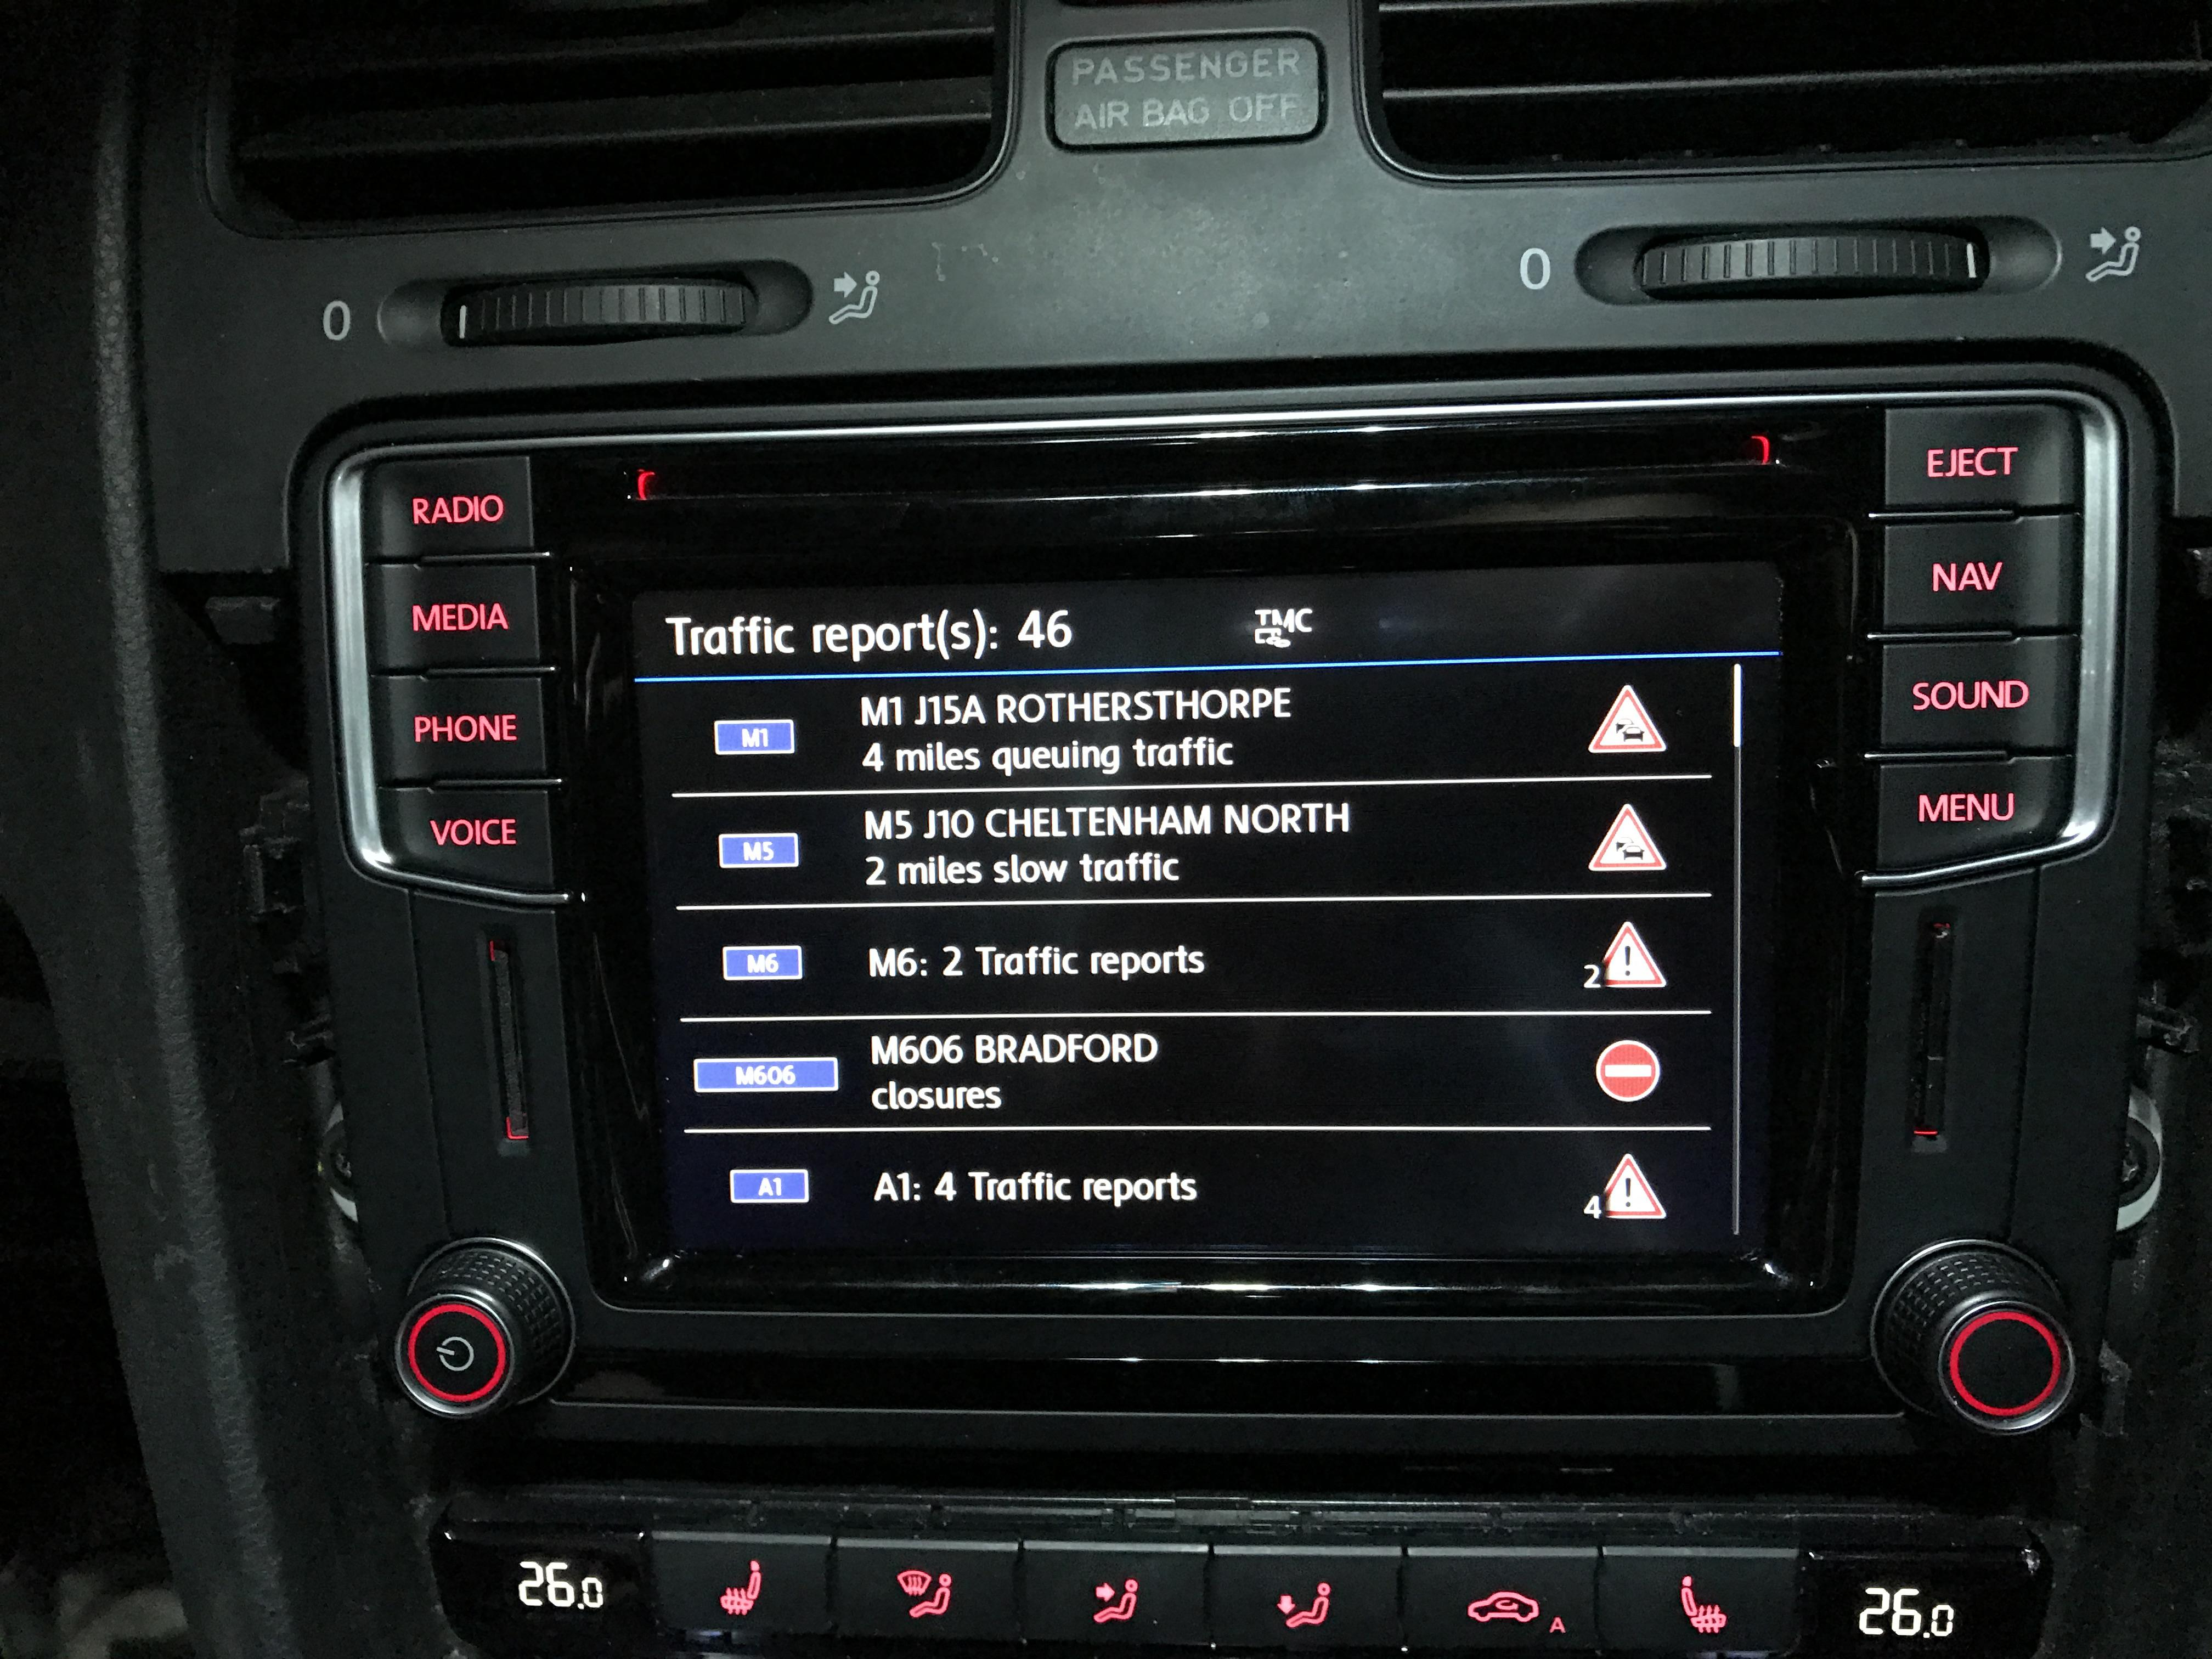 Retrofit of Discover Media/ Composition Media head units to